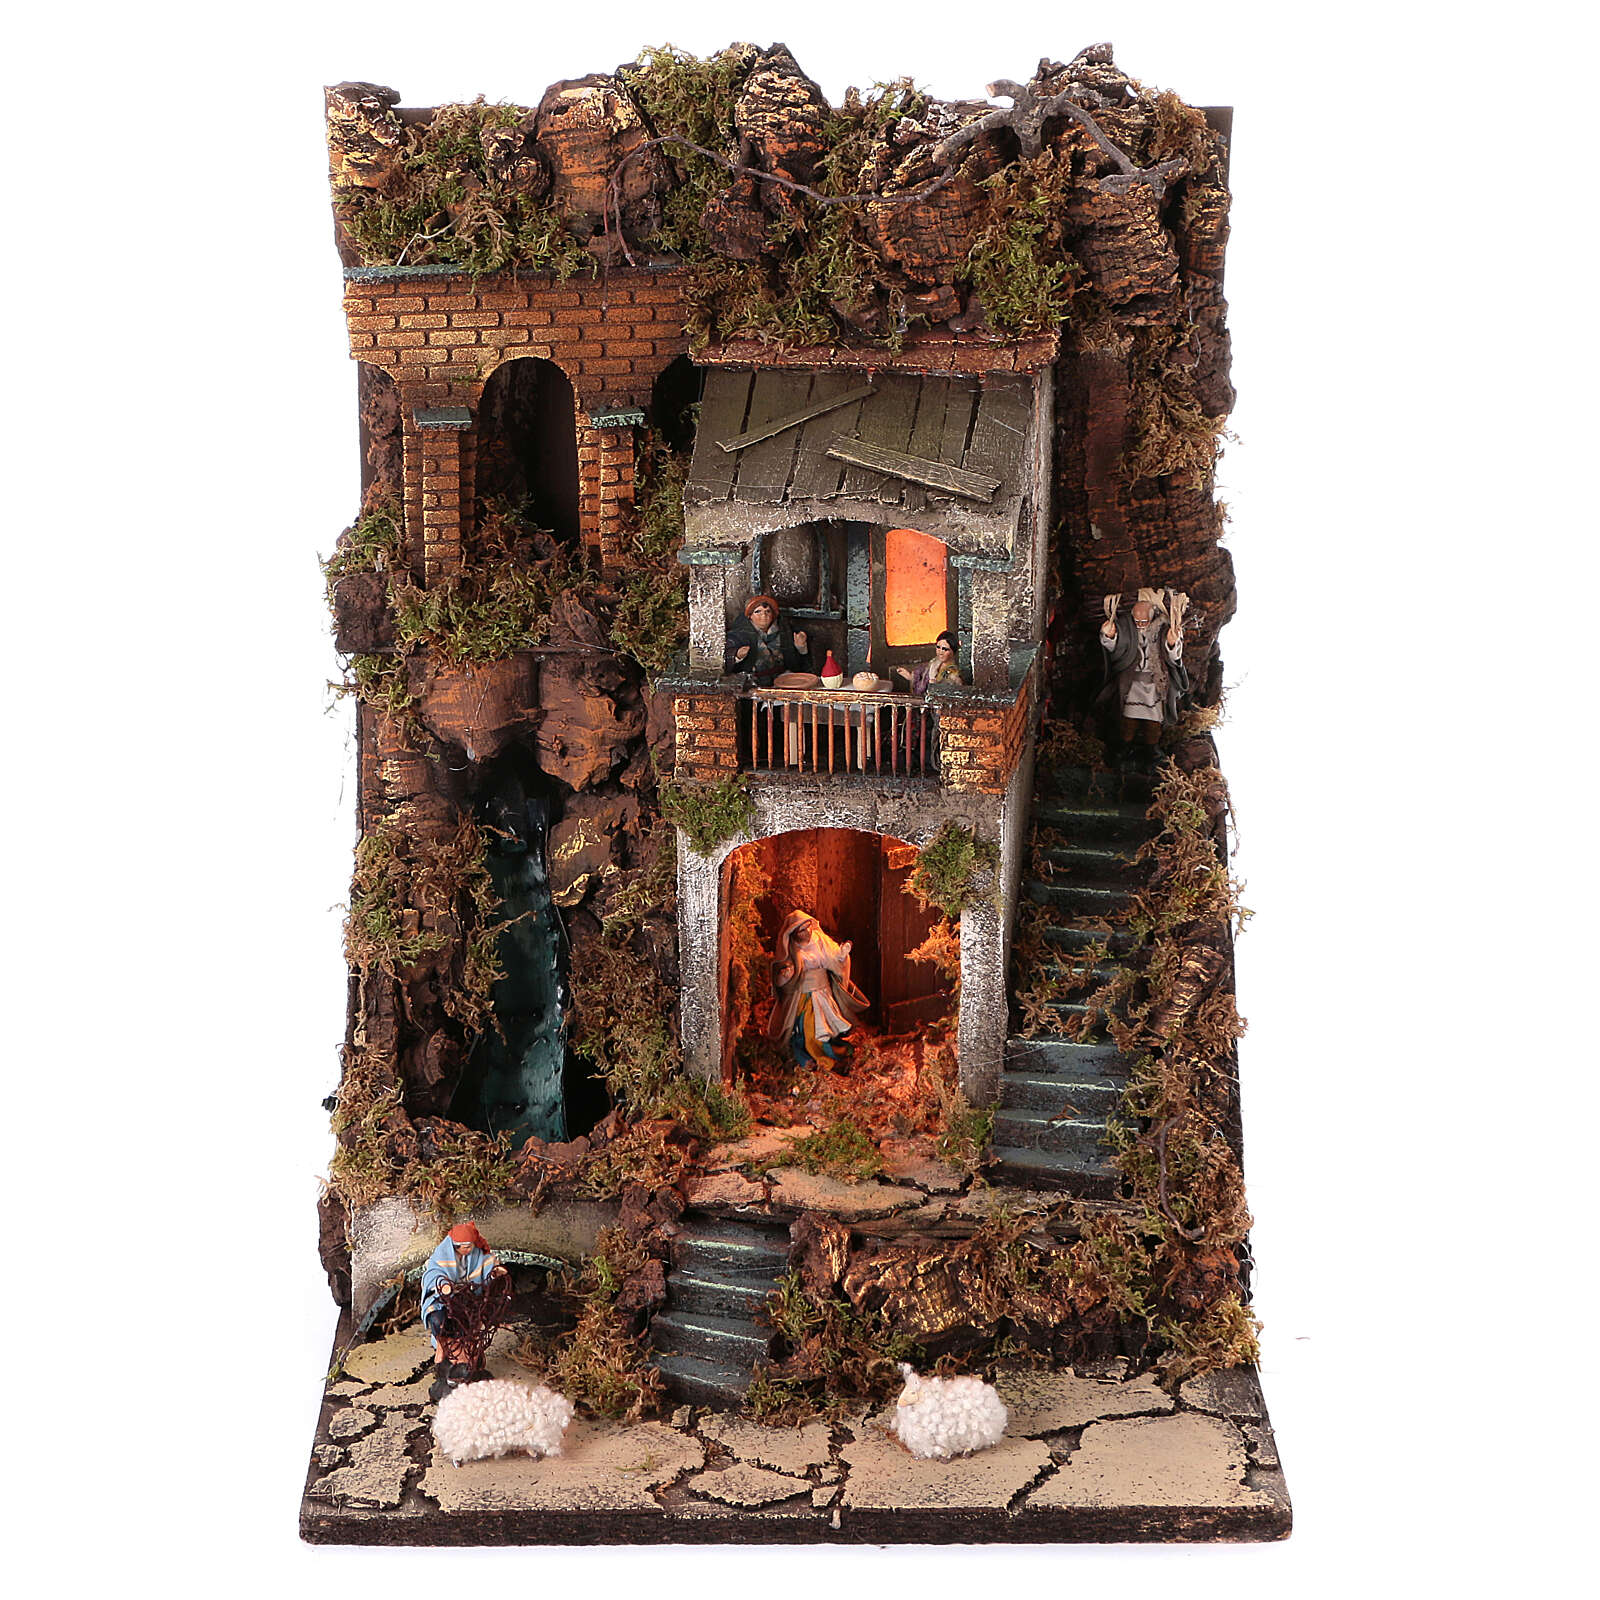 Neapolitan nativity village with 8 cm figures and waterfall 55x40x40 module 2 4